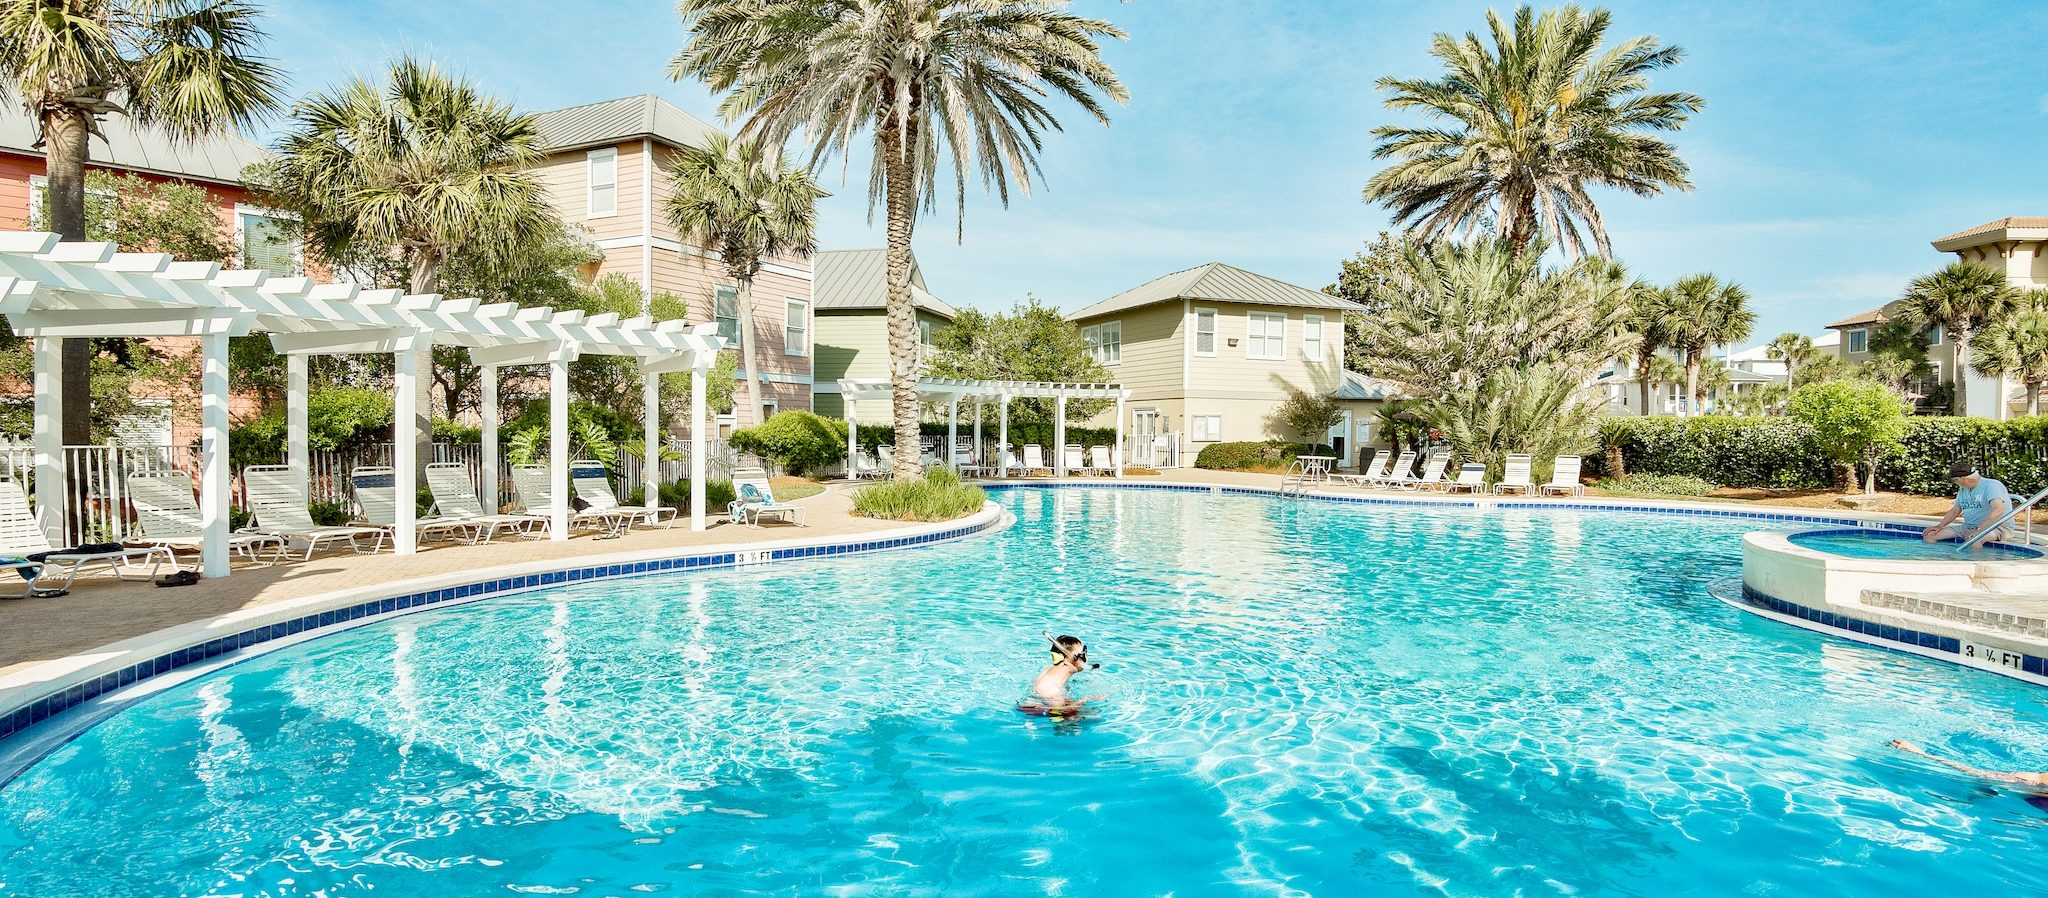 There are lots of amenities at Beach Retreat condos in Destin, Florida.